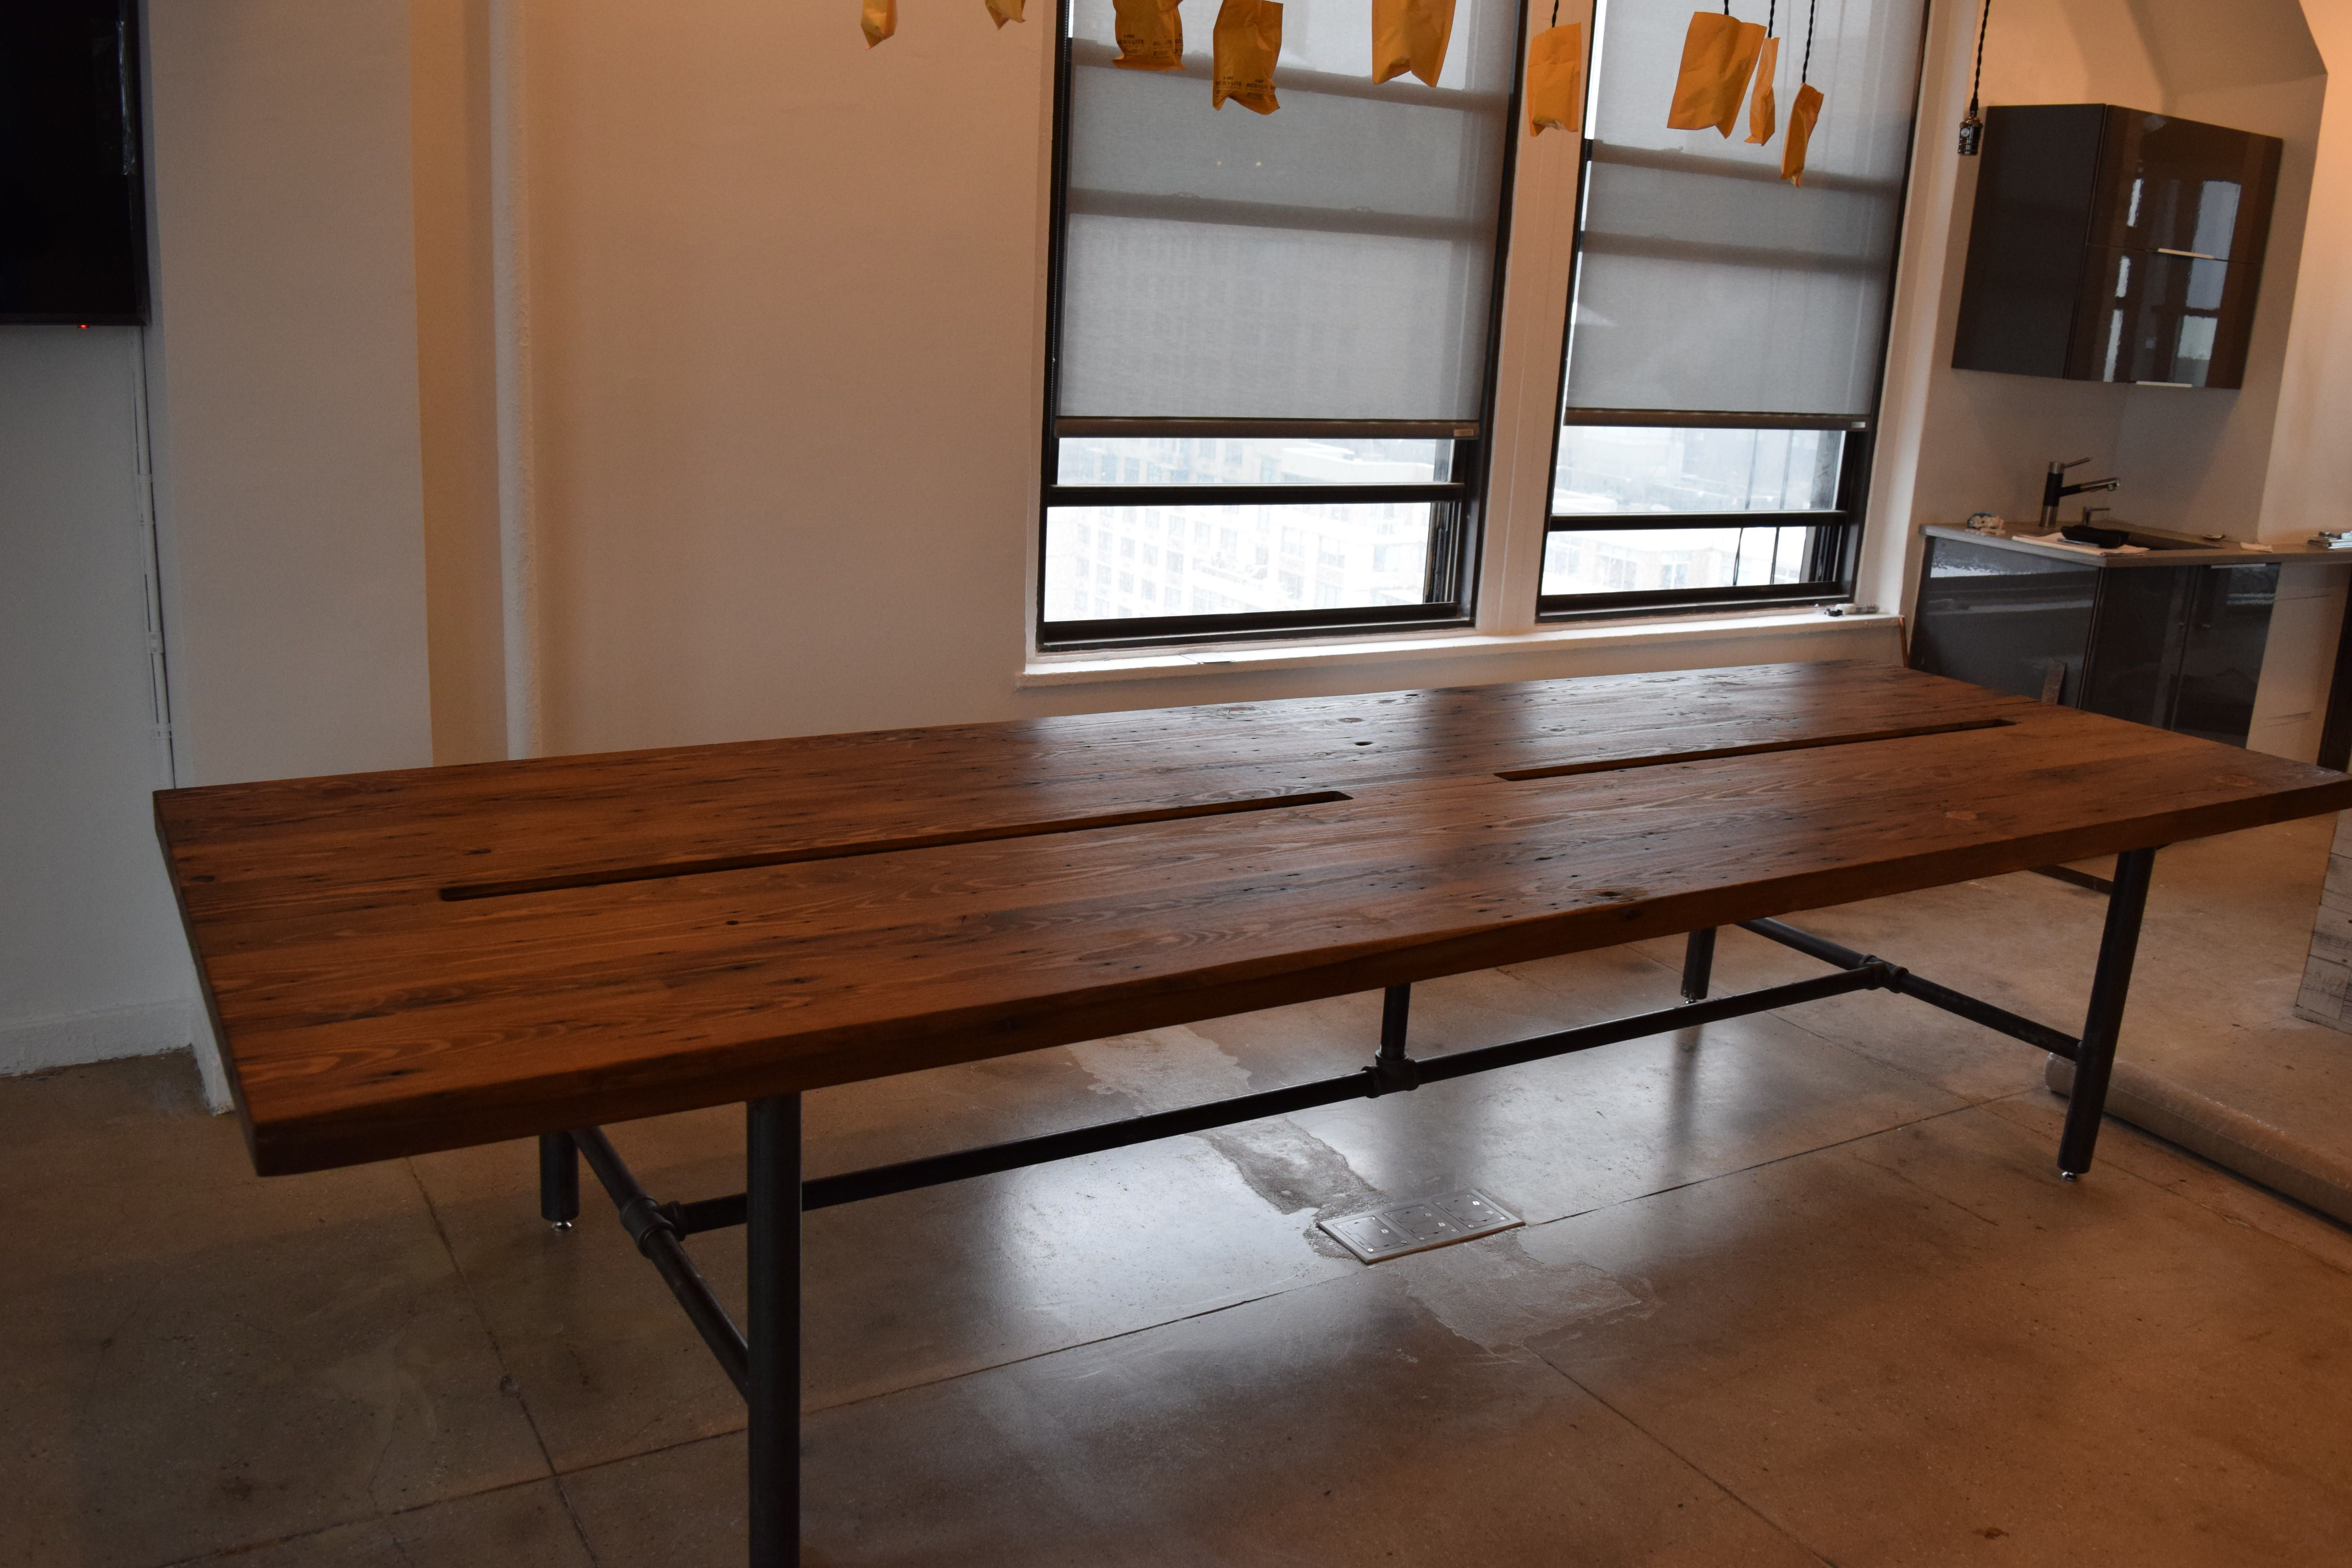 Reclaimed wood conference tables - Reclaimed Wood Conference Table With Pipe Legs